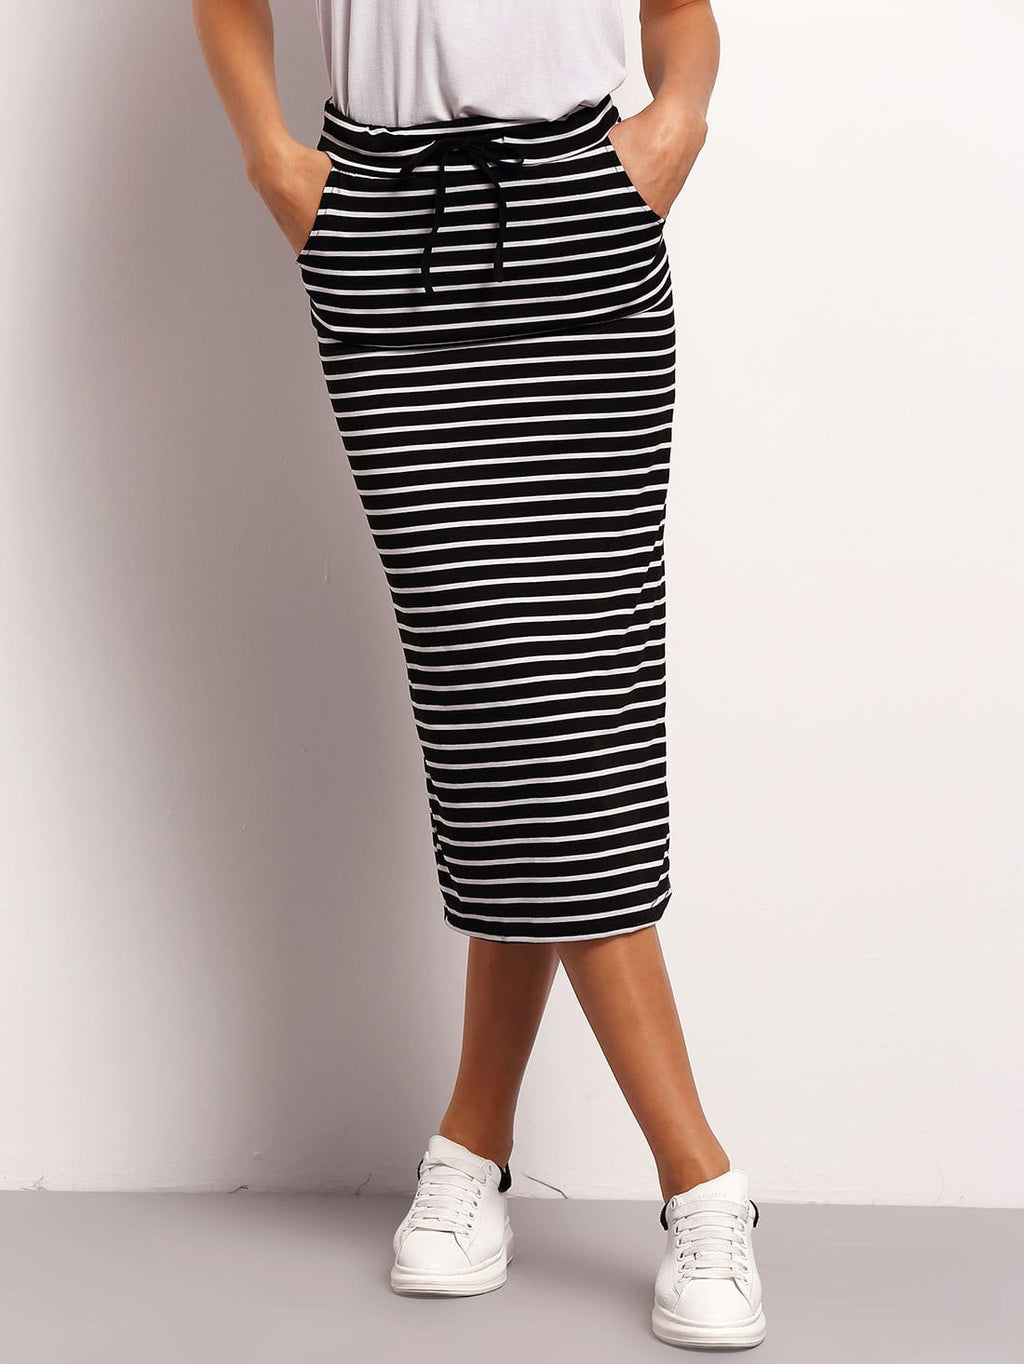 Drawstring Waist Horizon Striped Skirt